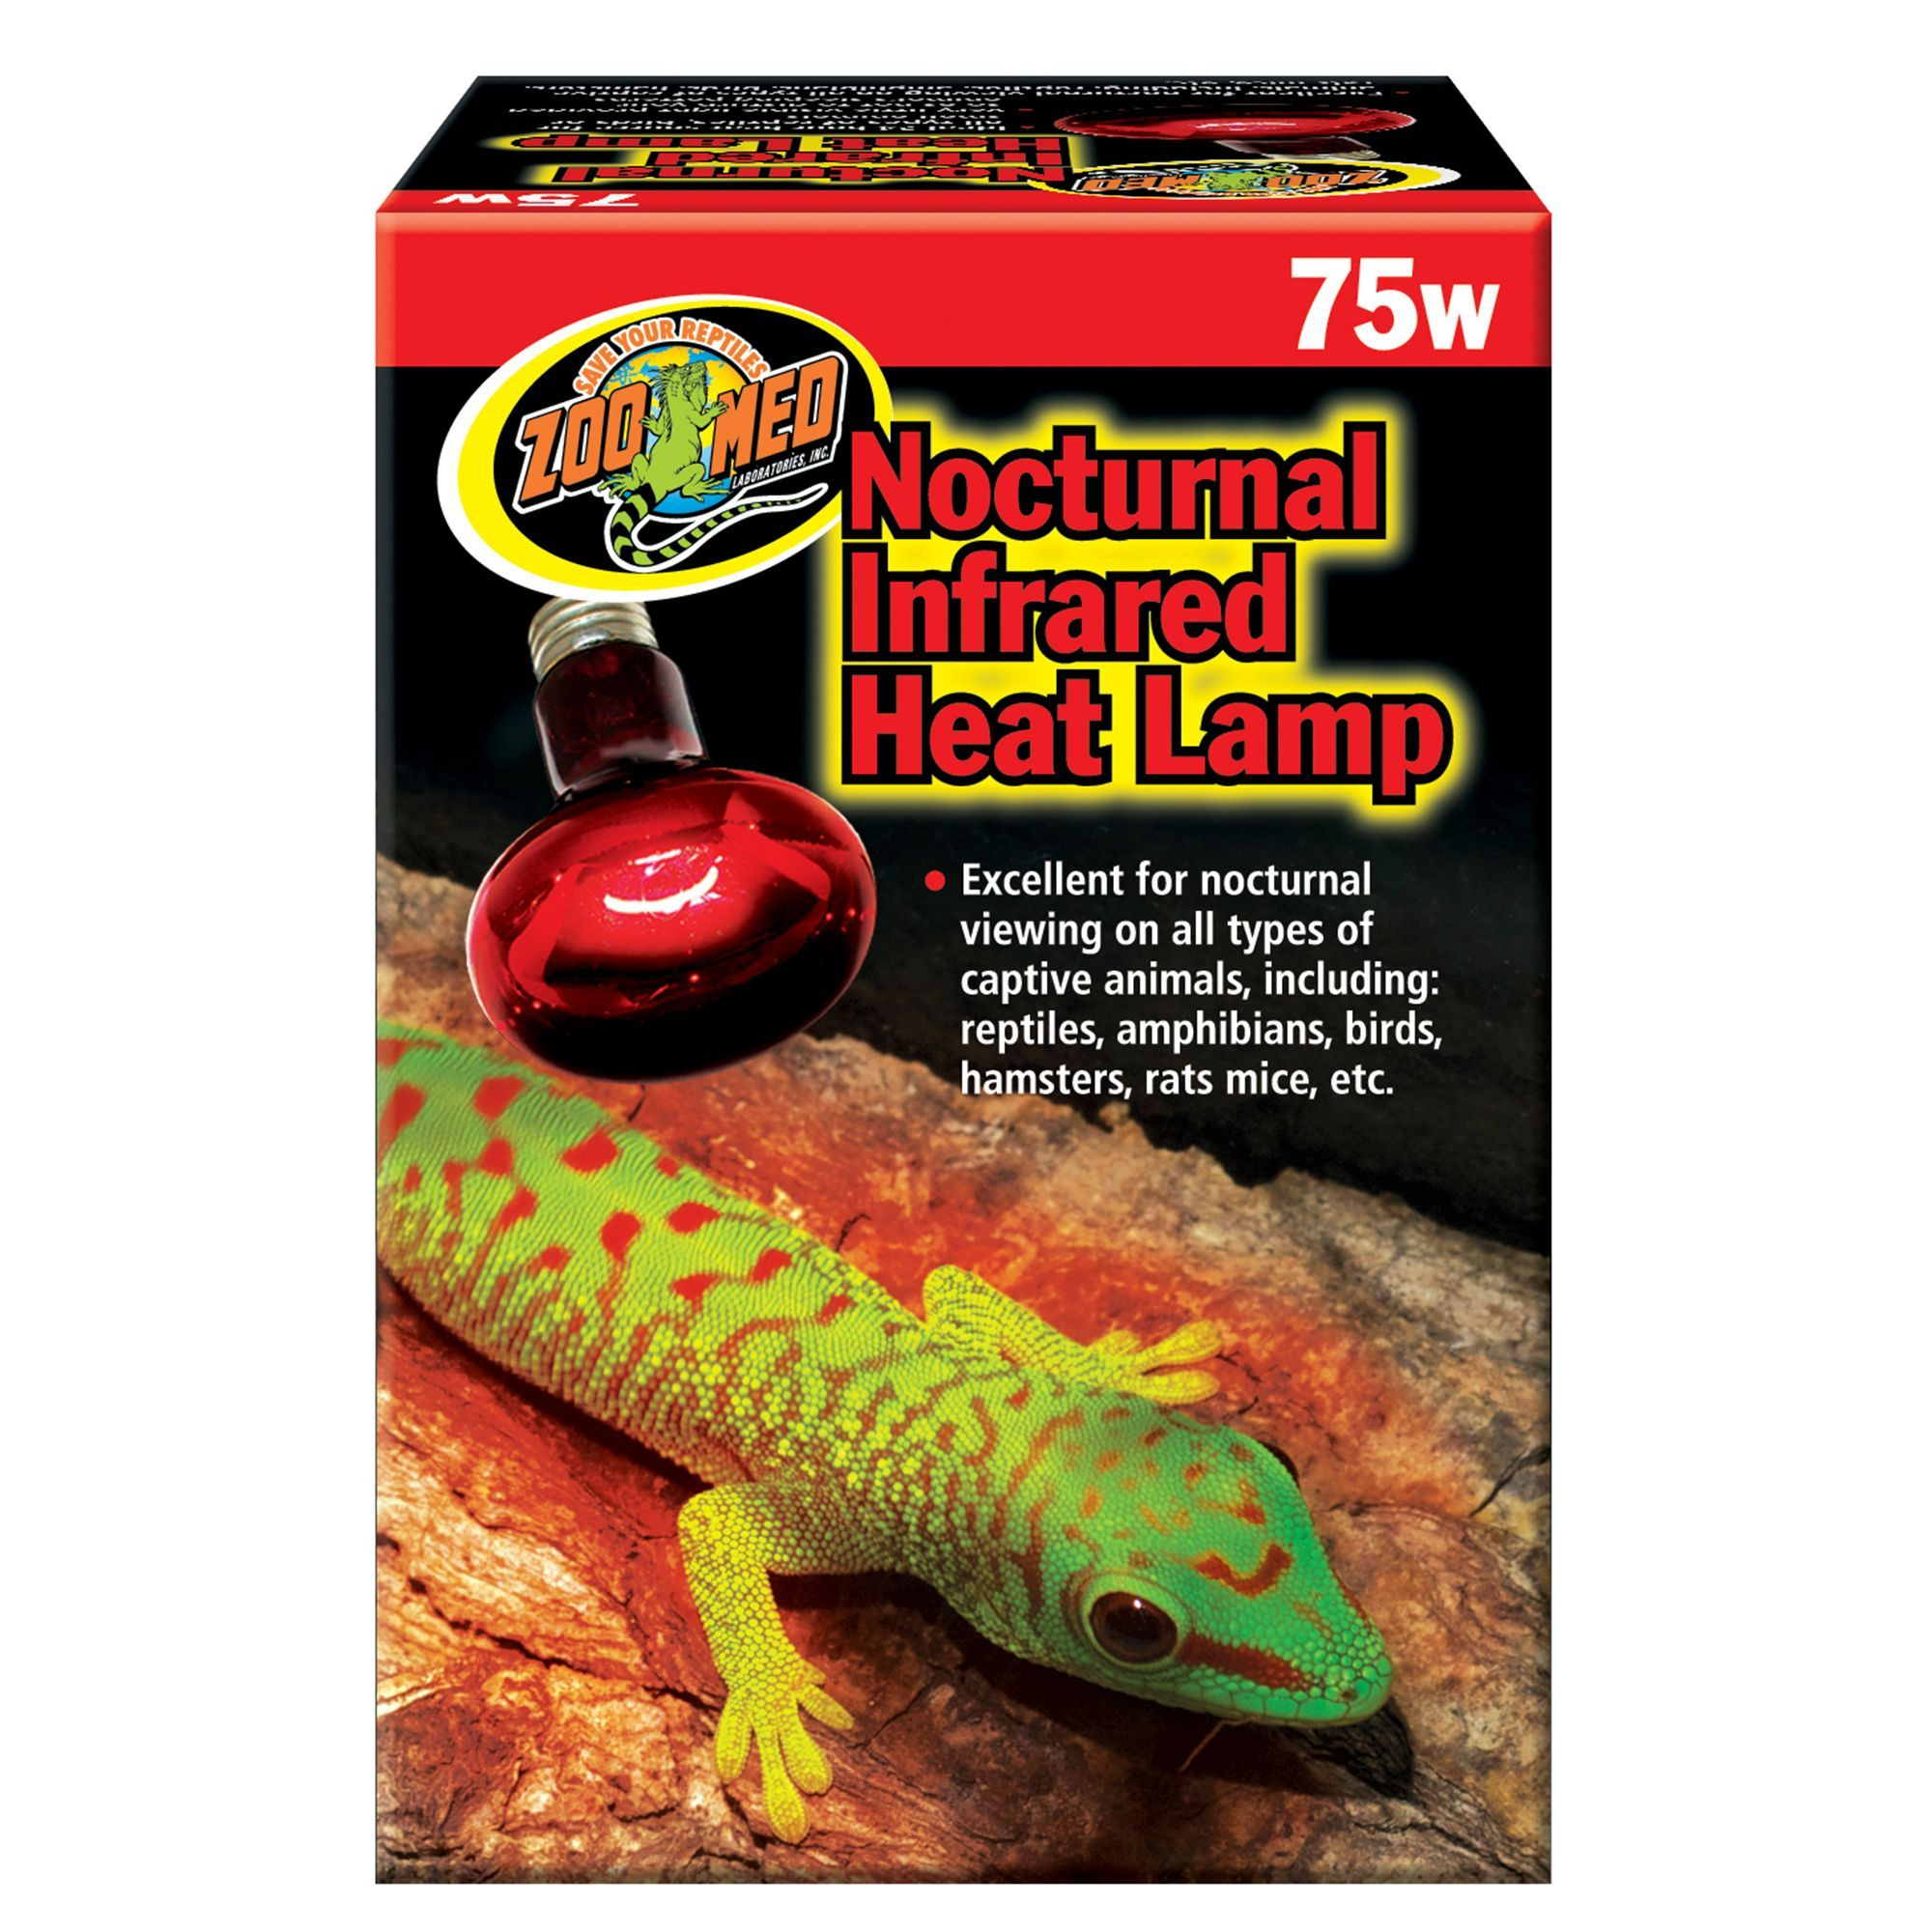 Zoo Med Nocturnal Reptile Infrared Heat Lamp size 75W